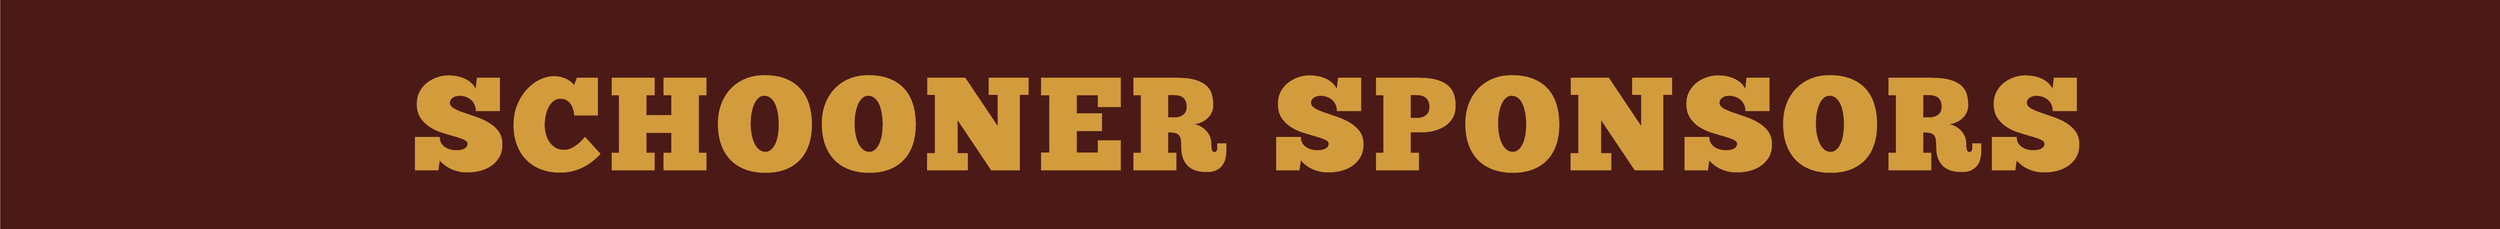 18_CRAFTED_SponsorEmailBanner-05.png